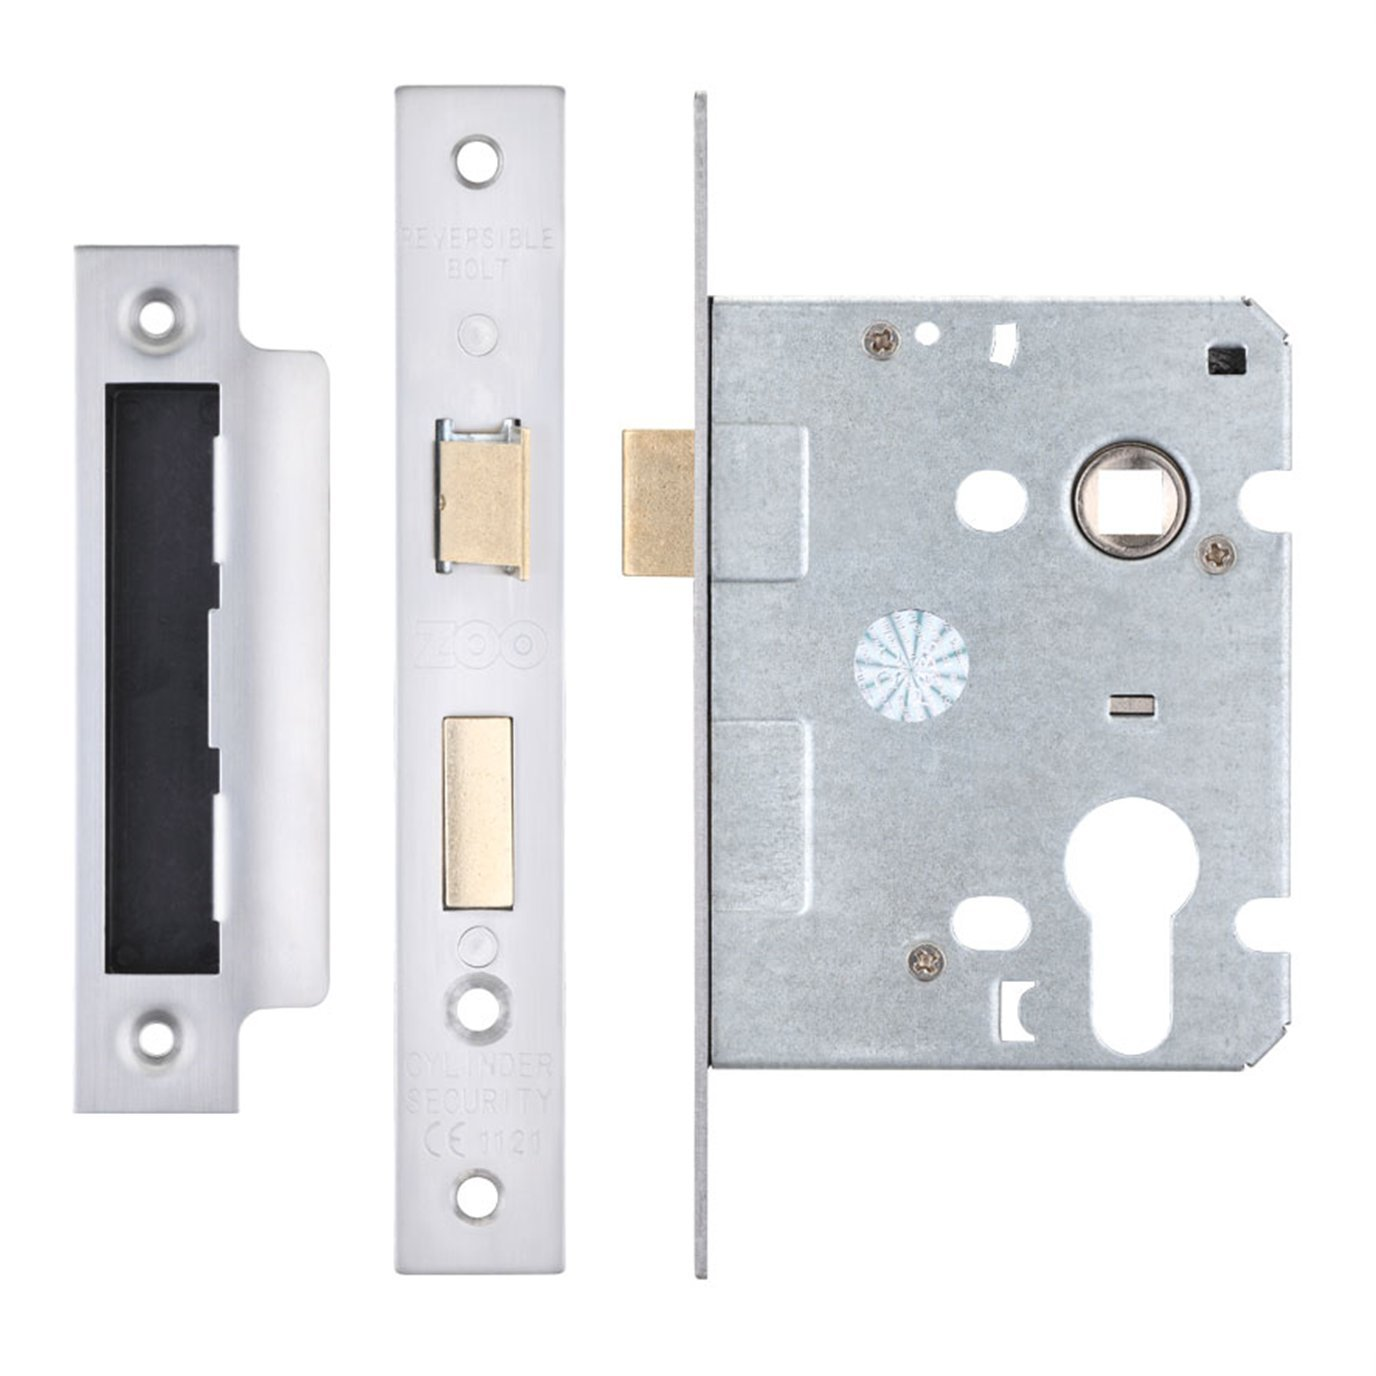 Zoo Hardware Mortice Euro Profile Sash Lock Case Body - Stainless Steel (64mm Case (44.5mm Backset))